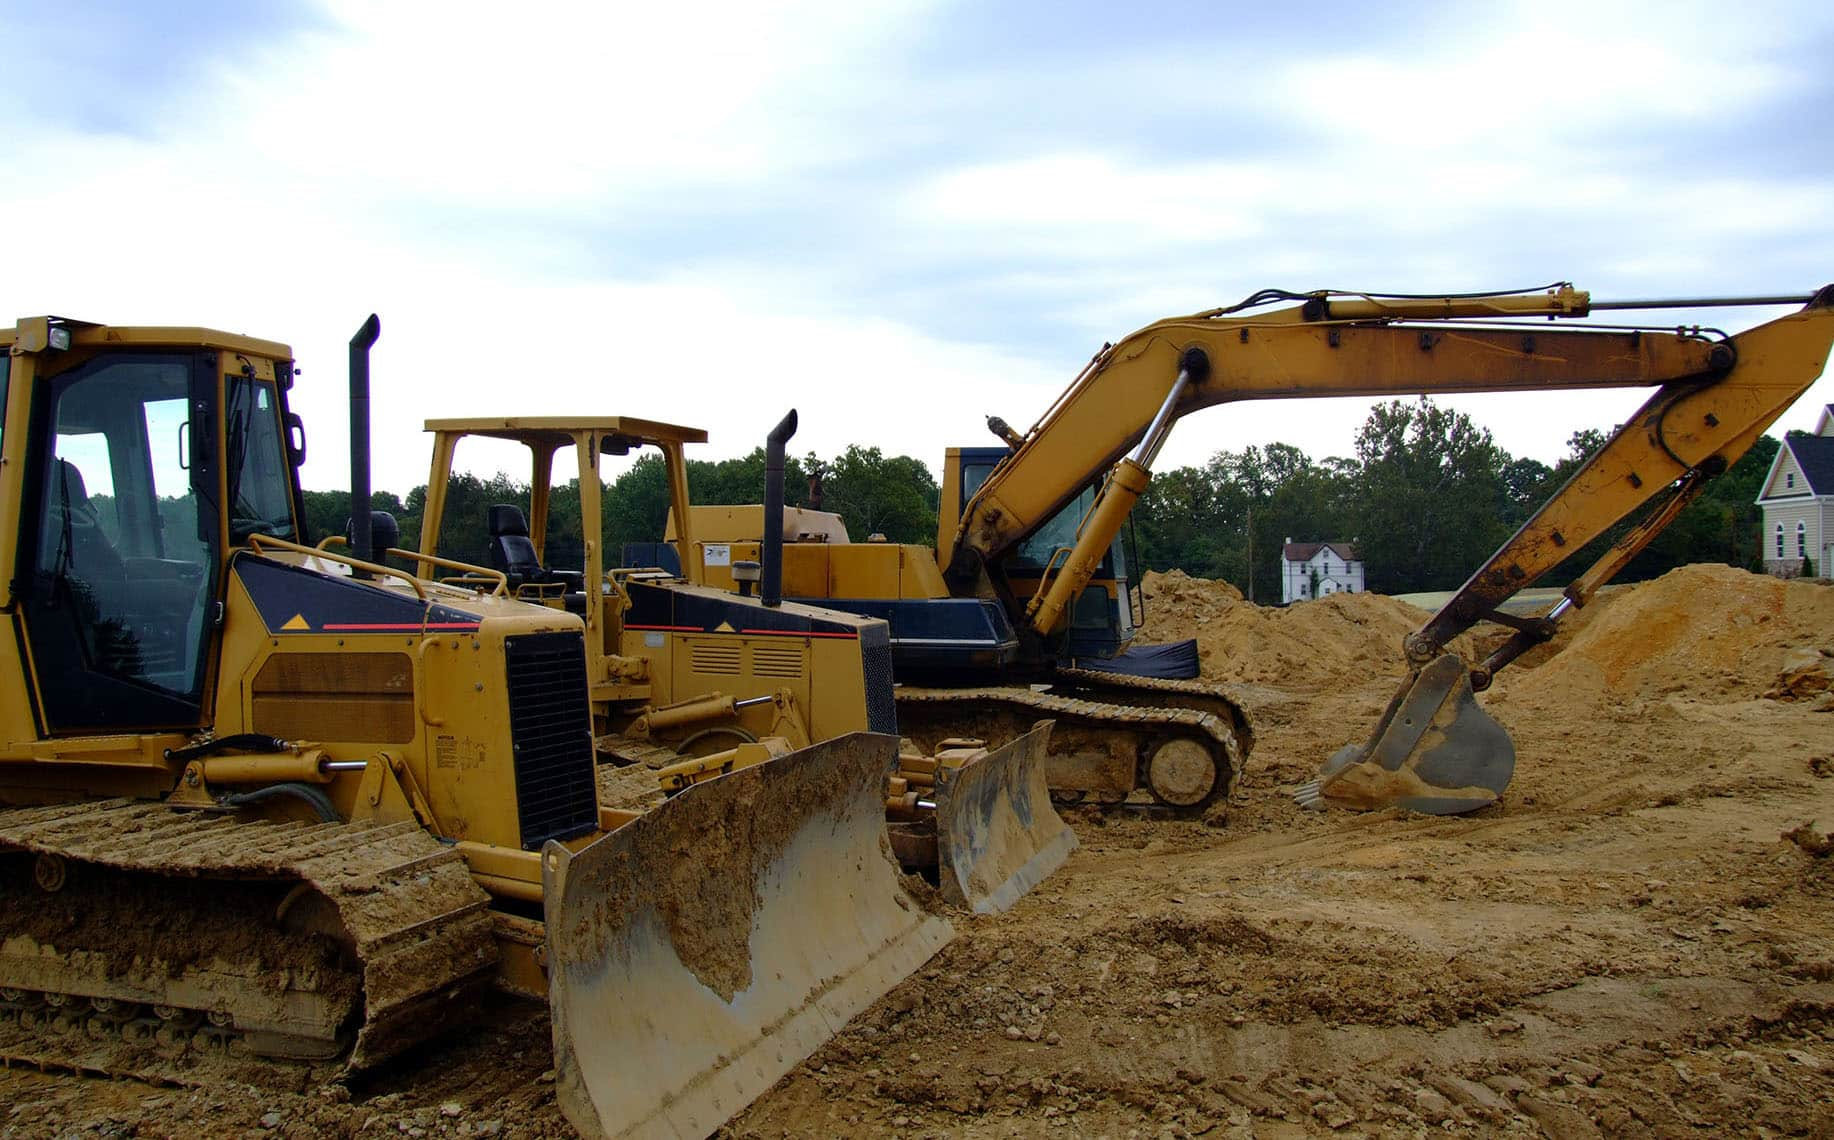 Construction – Heavy Equipment